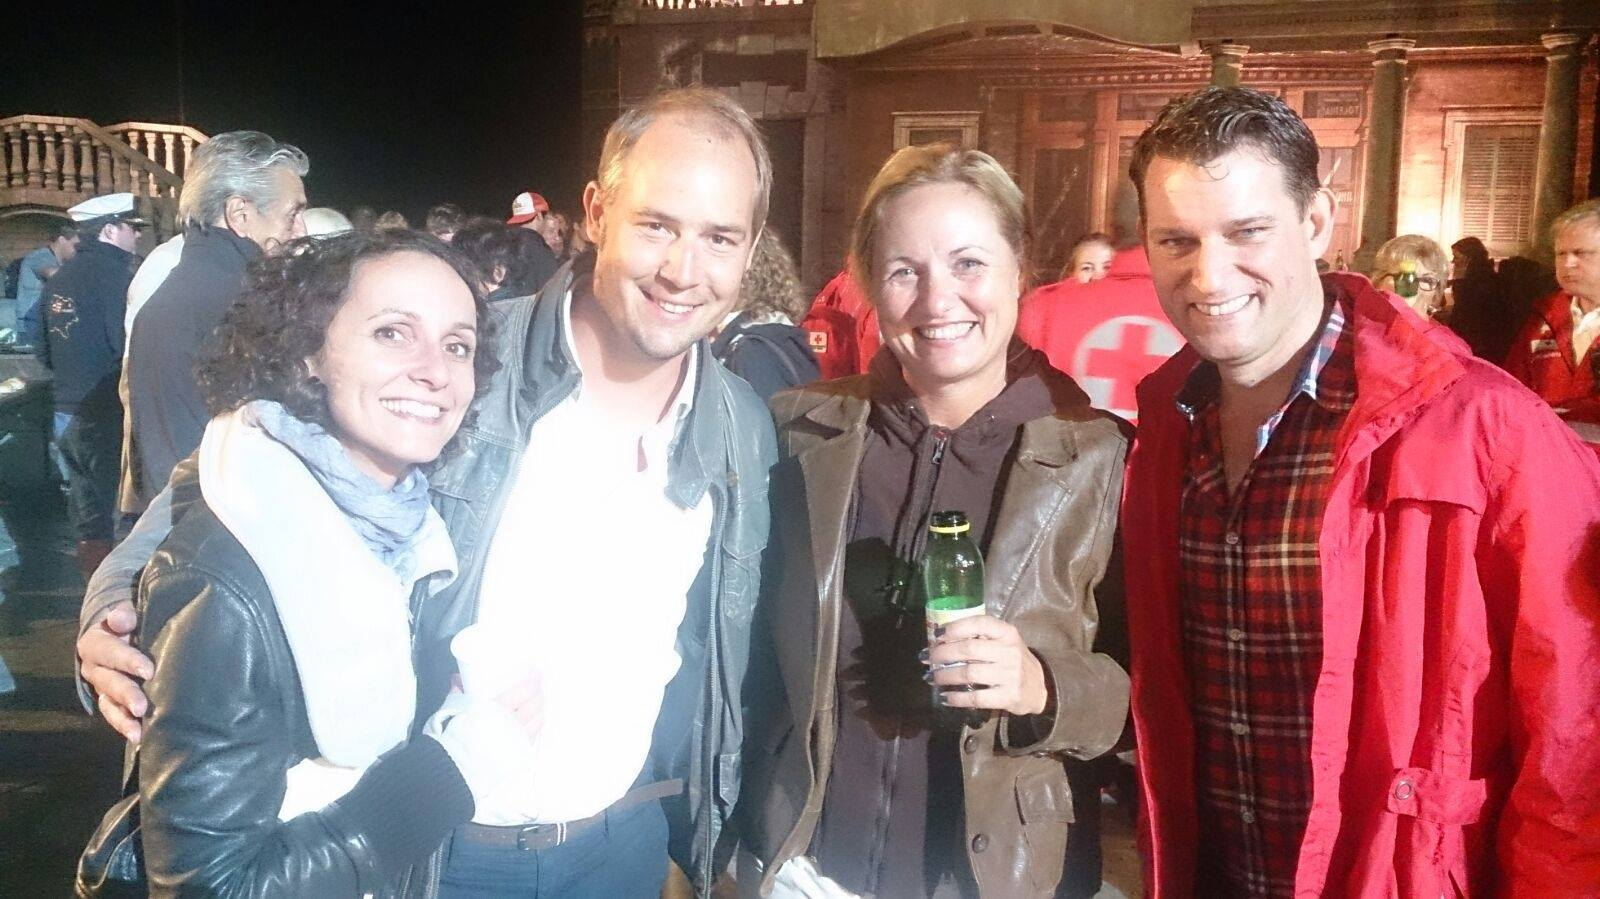 Dagmar Schellenberger (2nd from right) together with Verena Barth-Jurca, Peter Lesiak and Jeffrey Treganza at the festival in Mörbisch 2015. (Photo: Dagmar Schellenberger/Facebook)